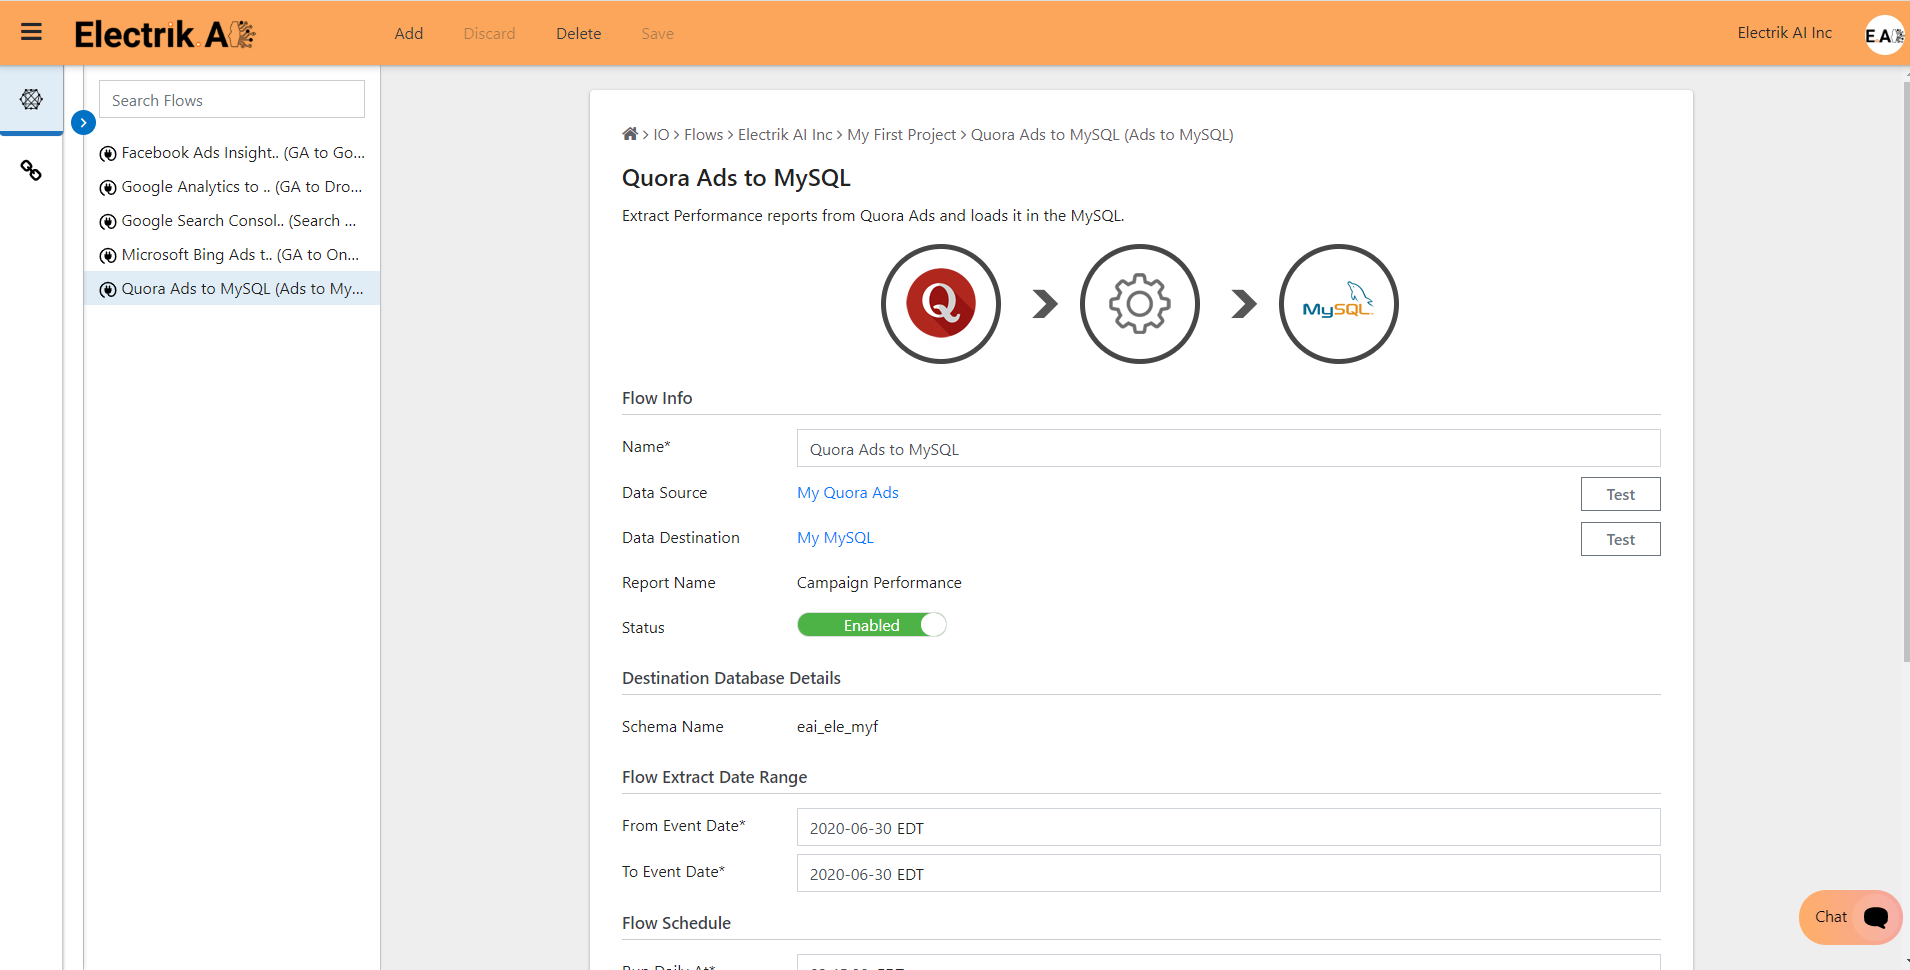 Congratulations, you have now successfully setup Quora Ads Performance Report to MySQL Database flow in ElectrikAI